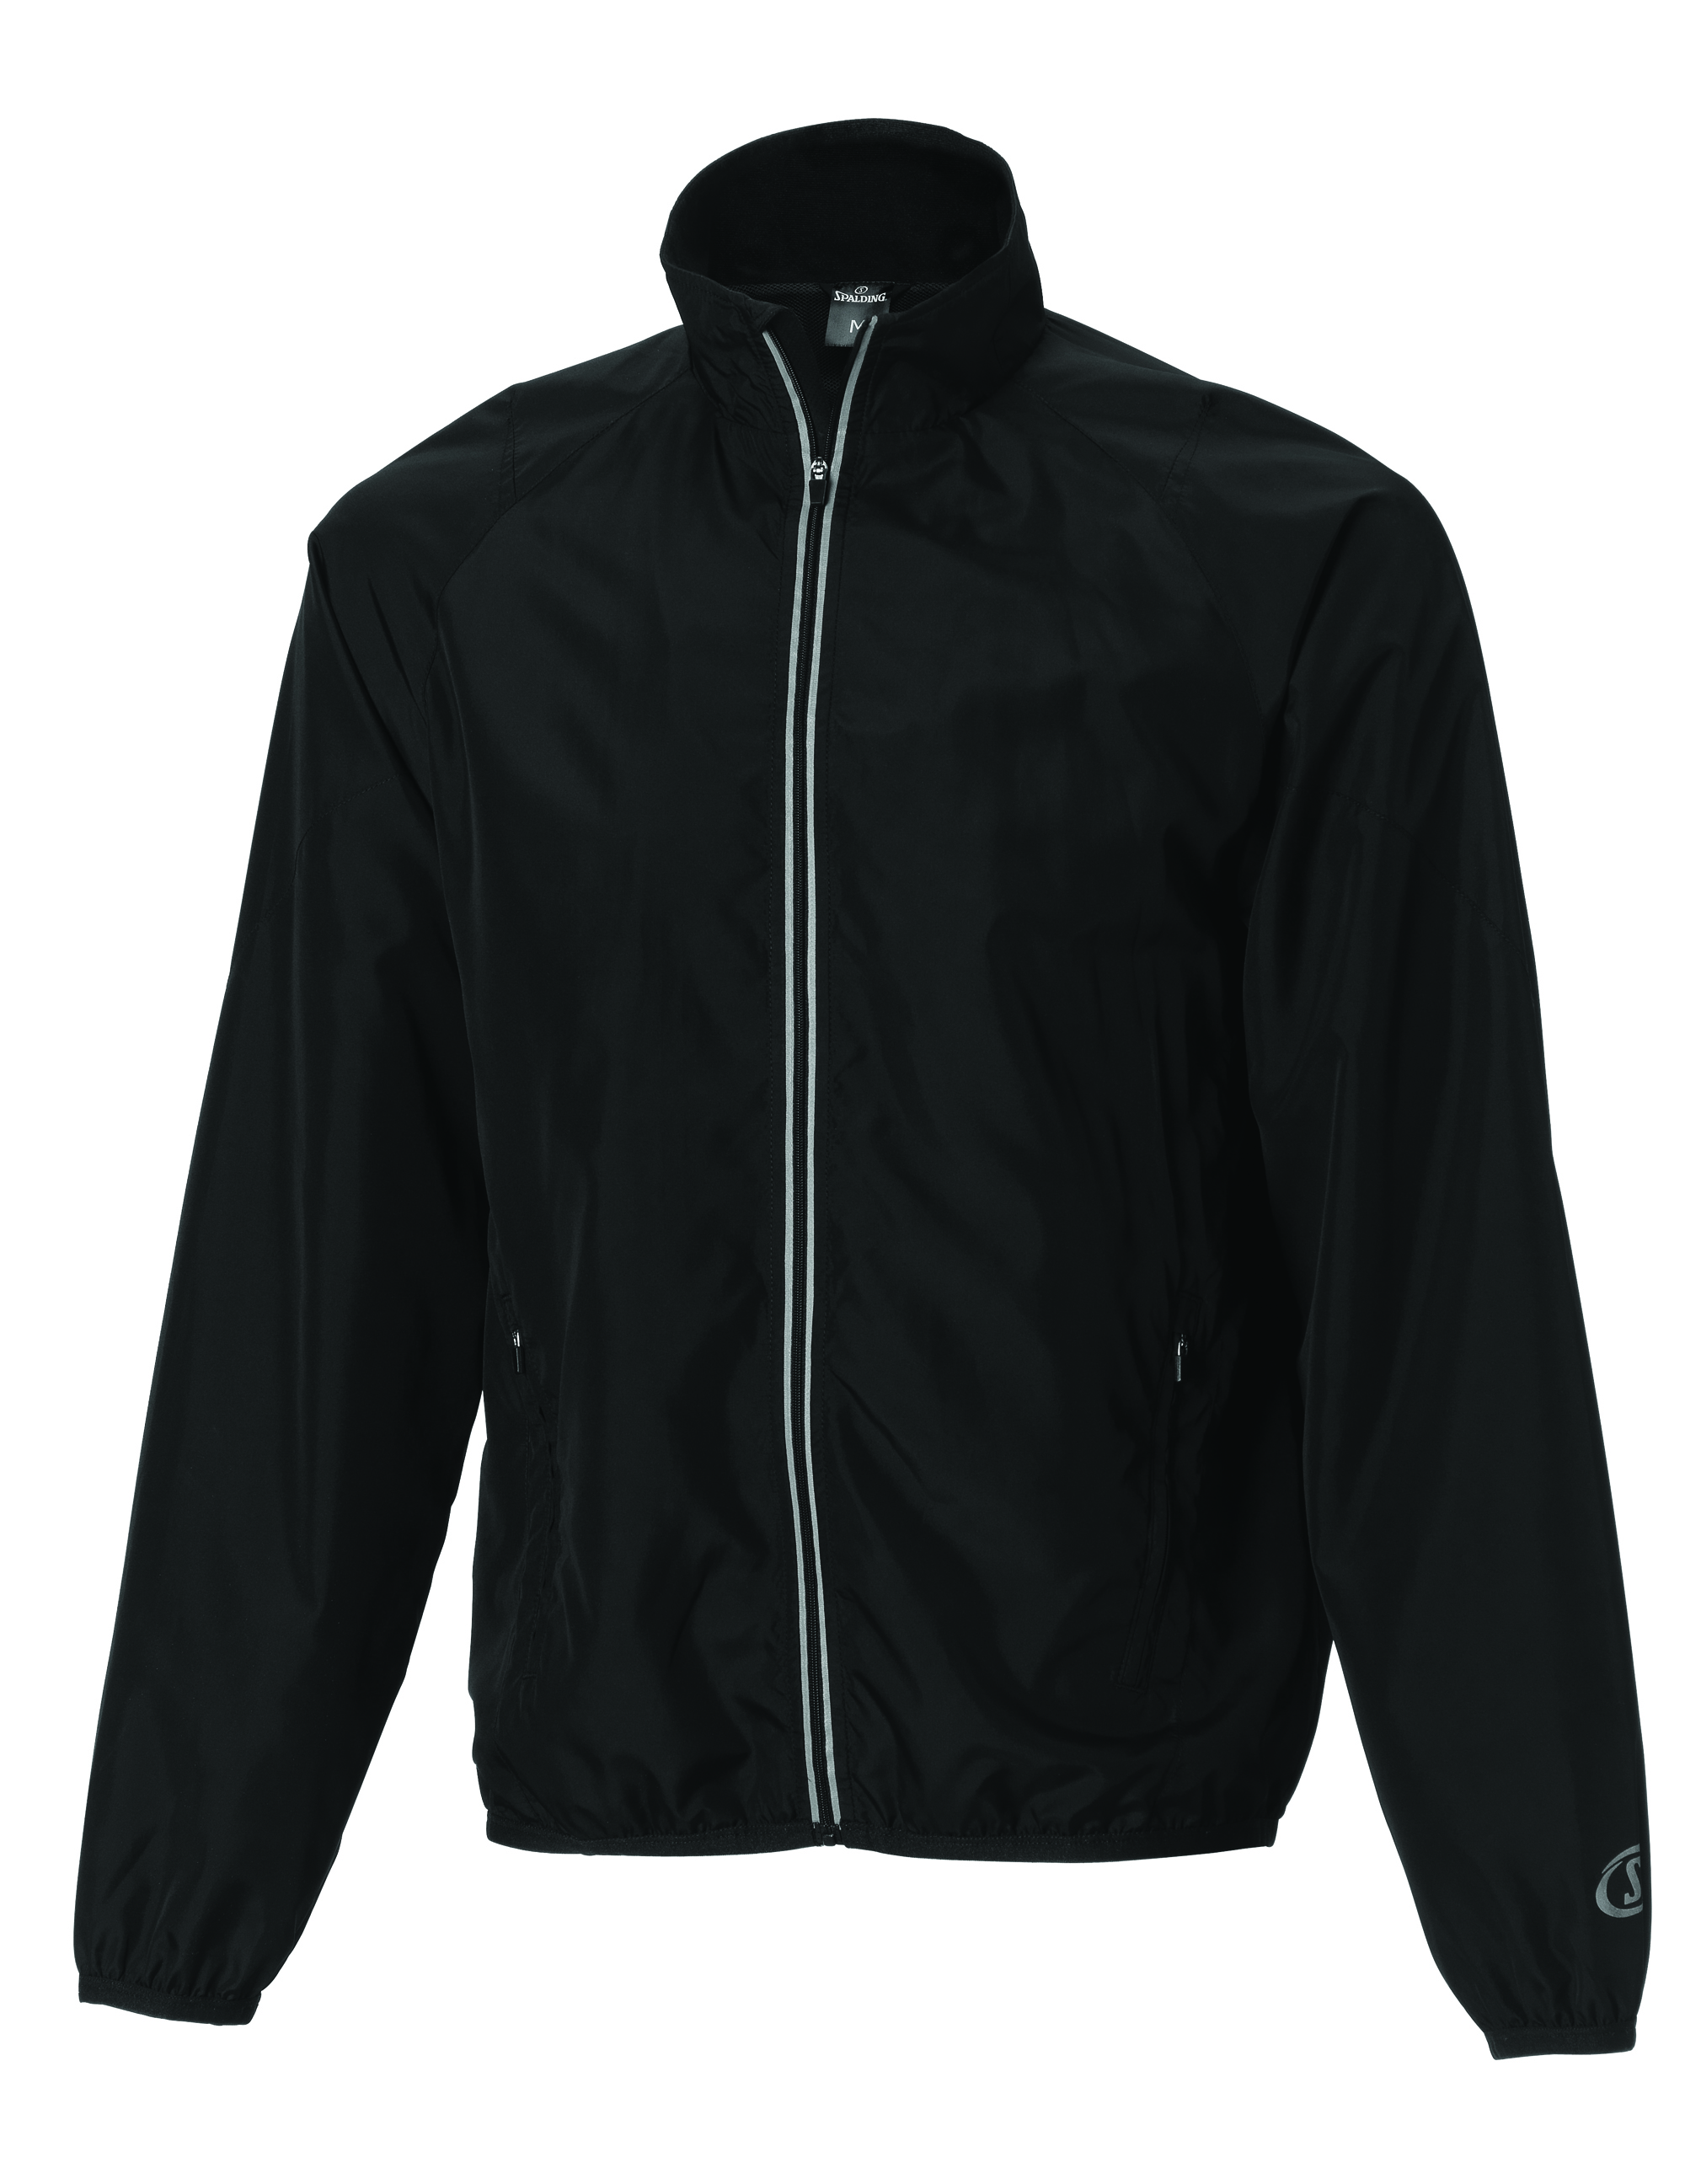 Adrenalin Jacket